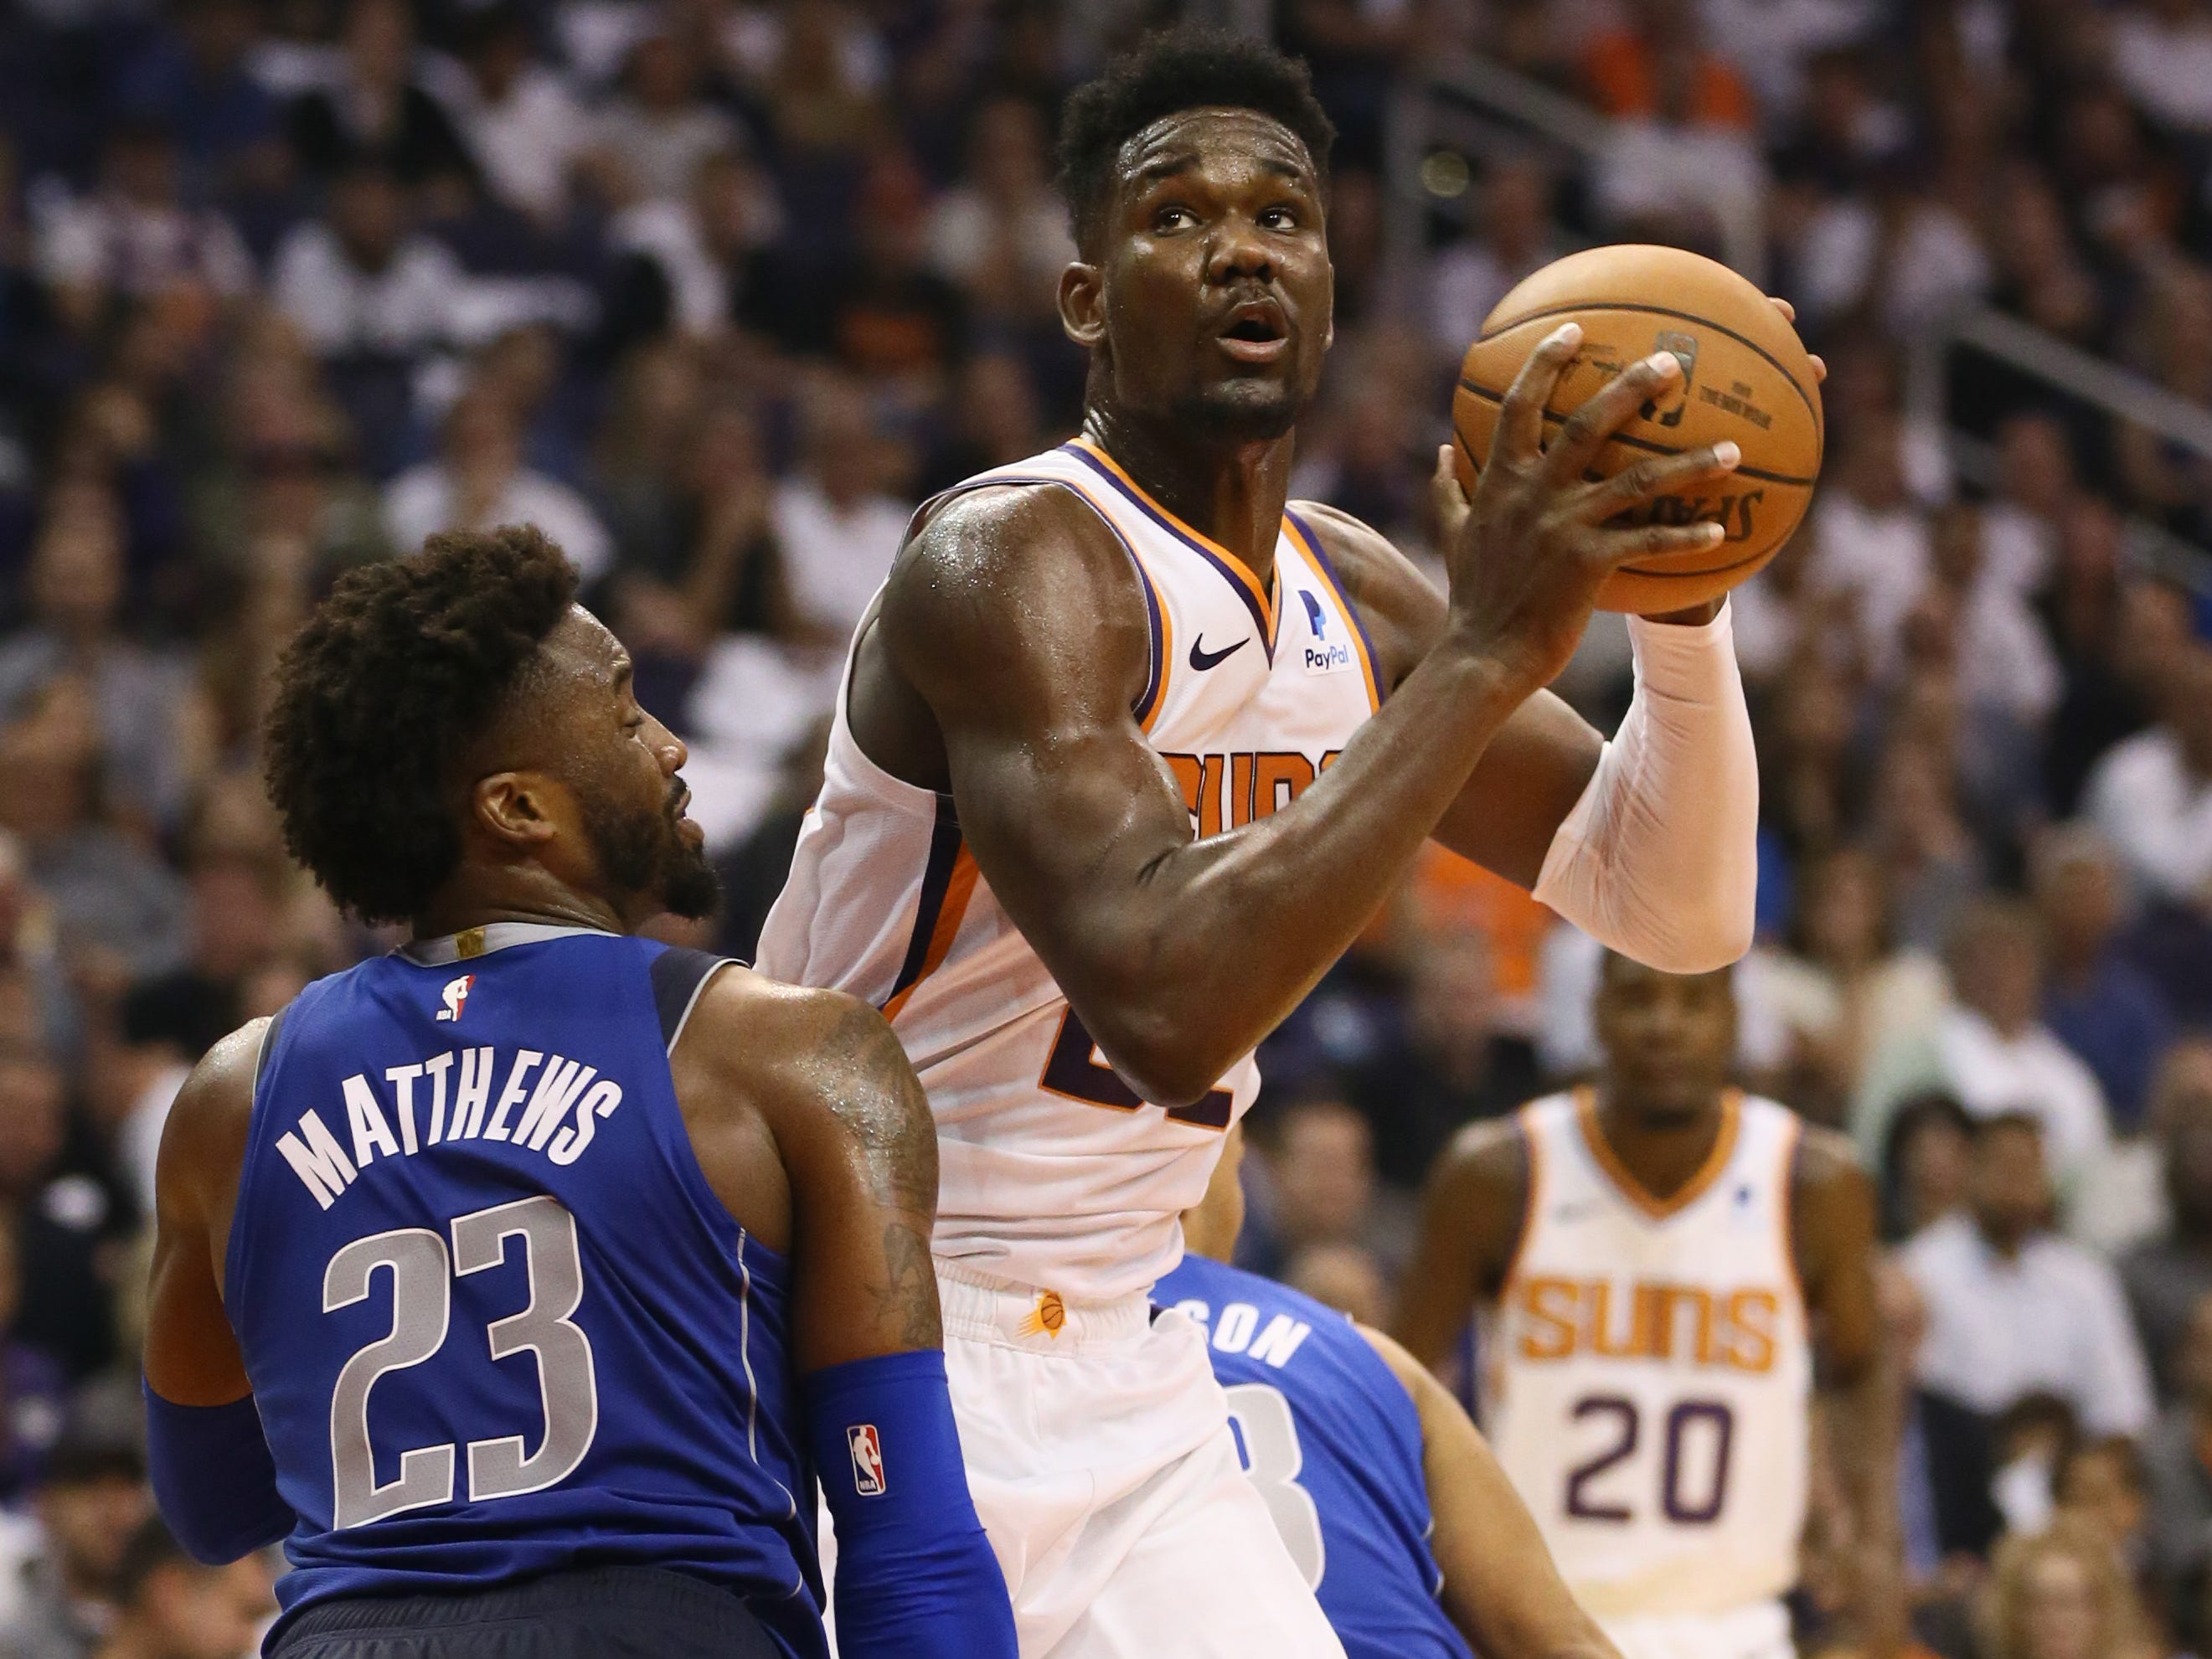 Phoenix Suns Deandre Ayton looks to the basket against the Dallas Mavericks during the season opener at Talking Stick Resort Arena on Oct. 17, 2018, in Phoenix, Ariz.